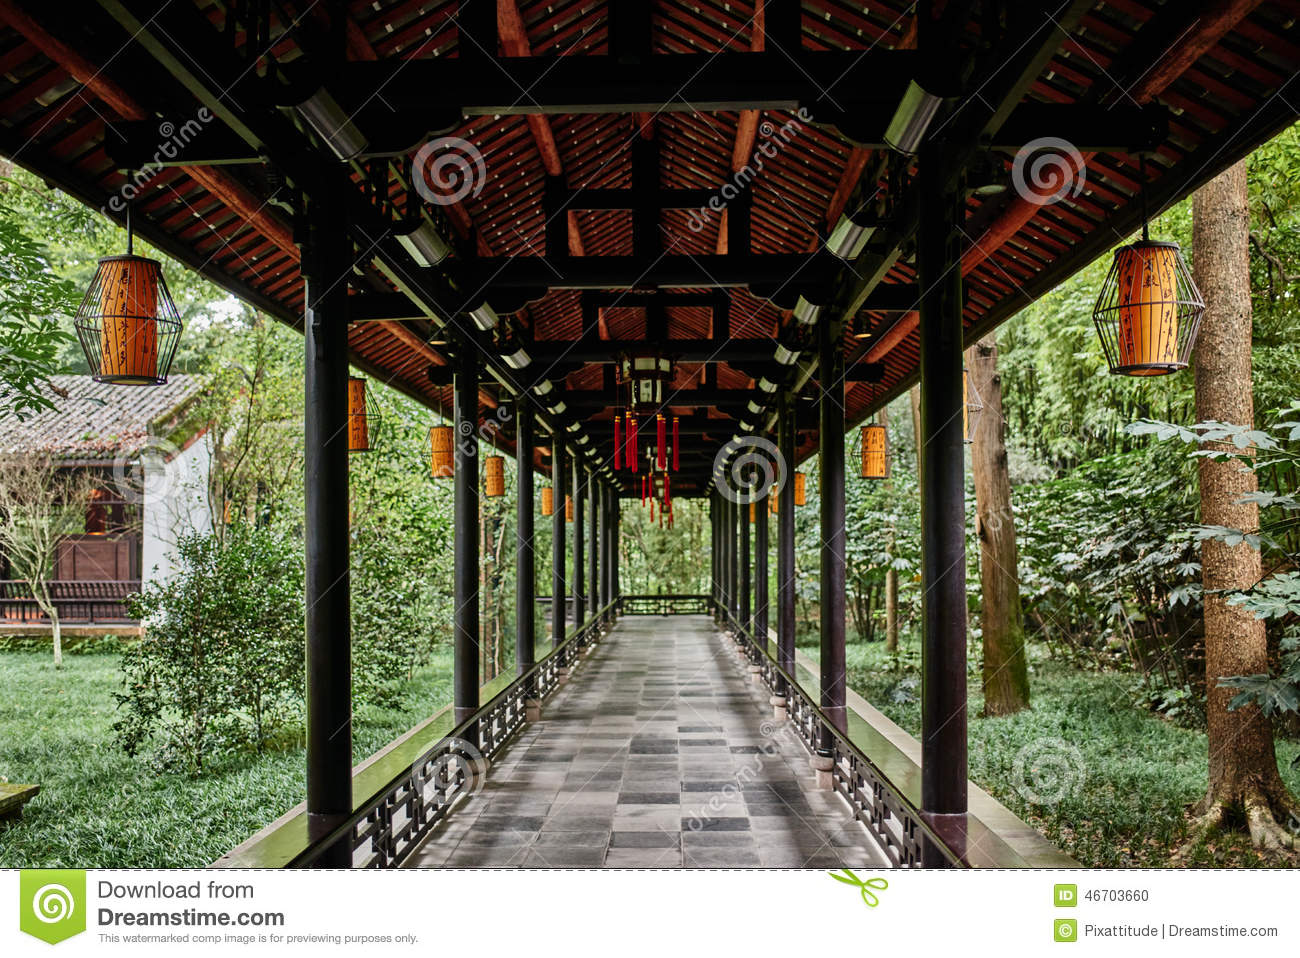 Download Du Fu Thatched Cottage Chengdu Sichuan China Stock Photo - Image of asian, sichuan: 46703660